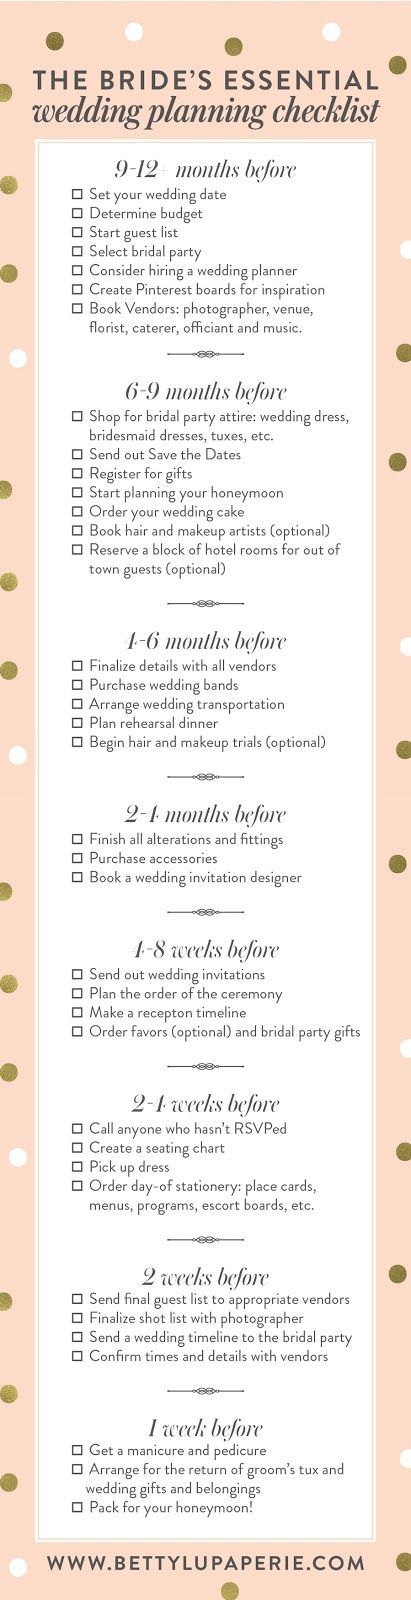 wedding planning checklist best photos is part of Wedding planning checklist - Take a look at the best wedding planning checklist in the photos below and get ideas for your wedding!!! How To Become a Wedding Planner, Tips for Becoming a Wedding Planner & having a Career in Wedding Planning   Team… Continue Reading →